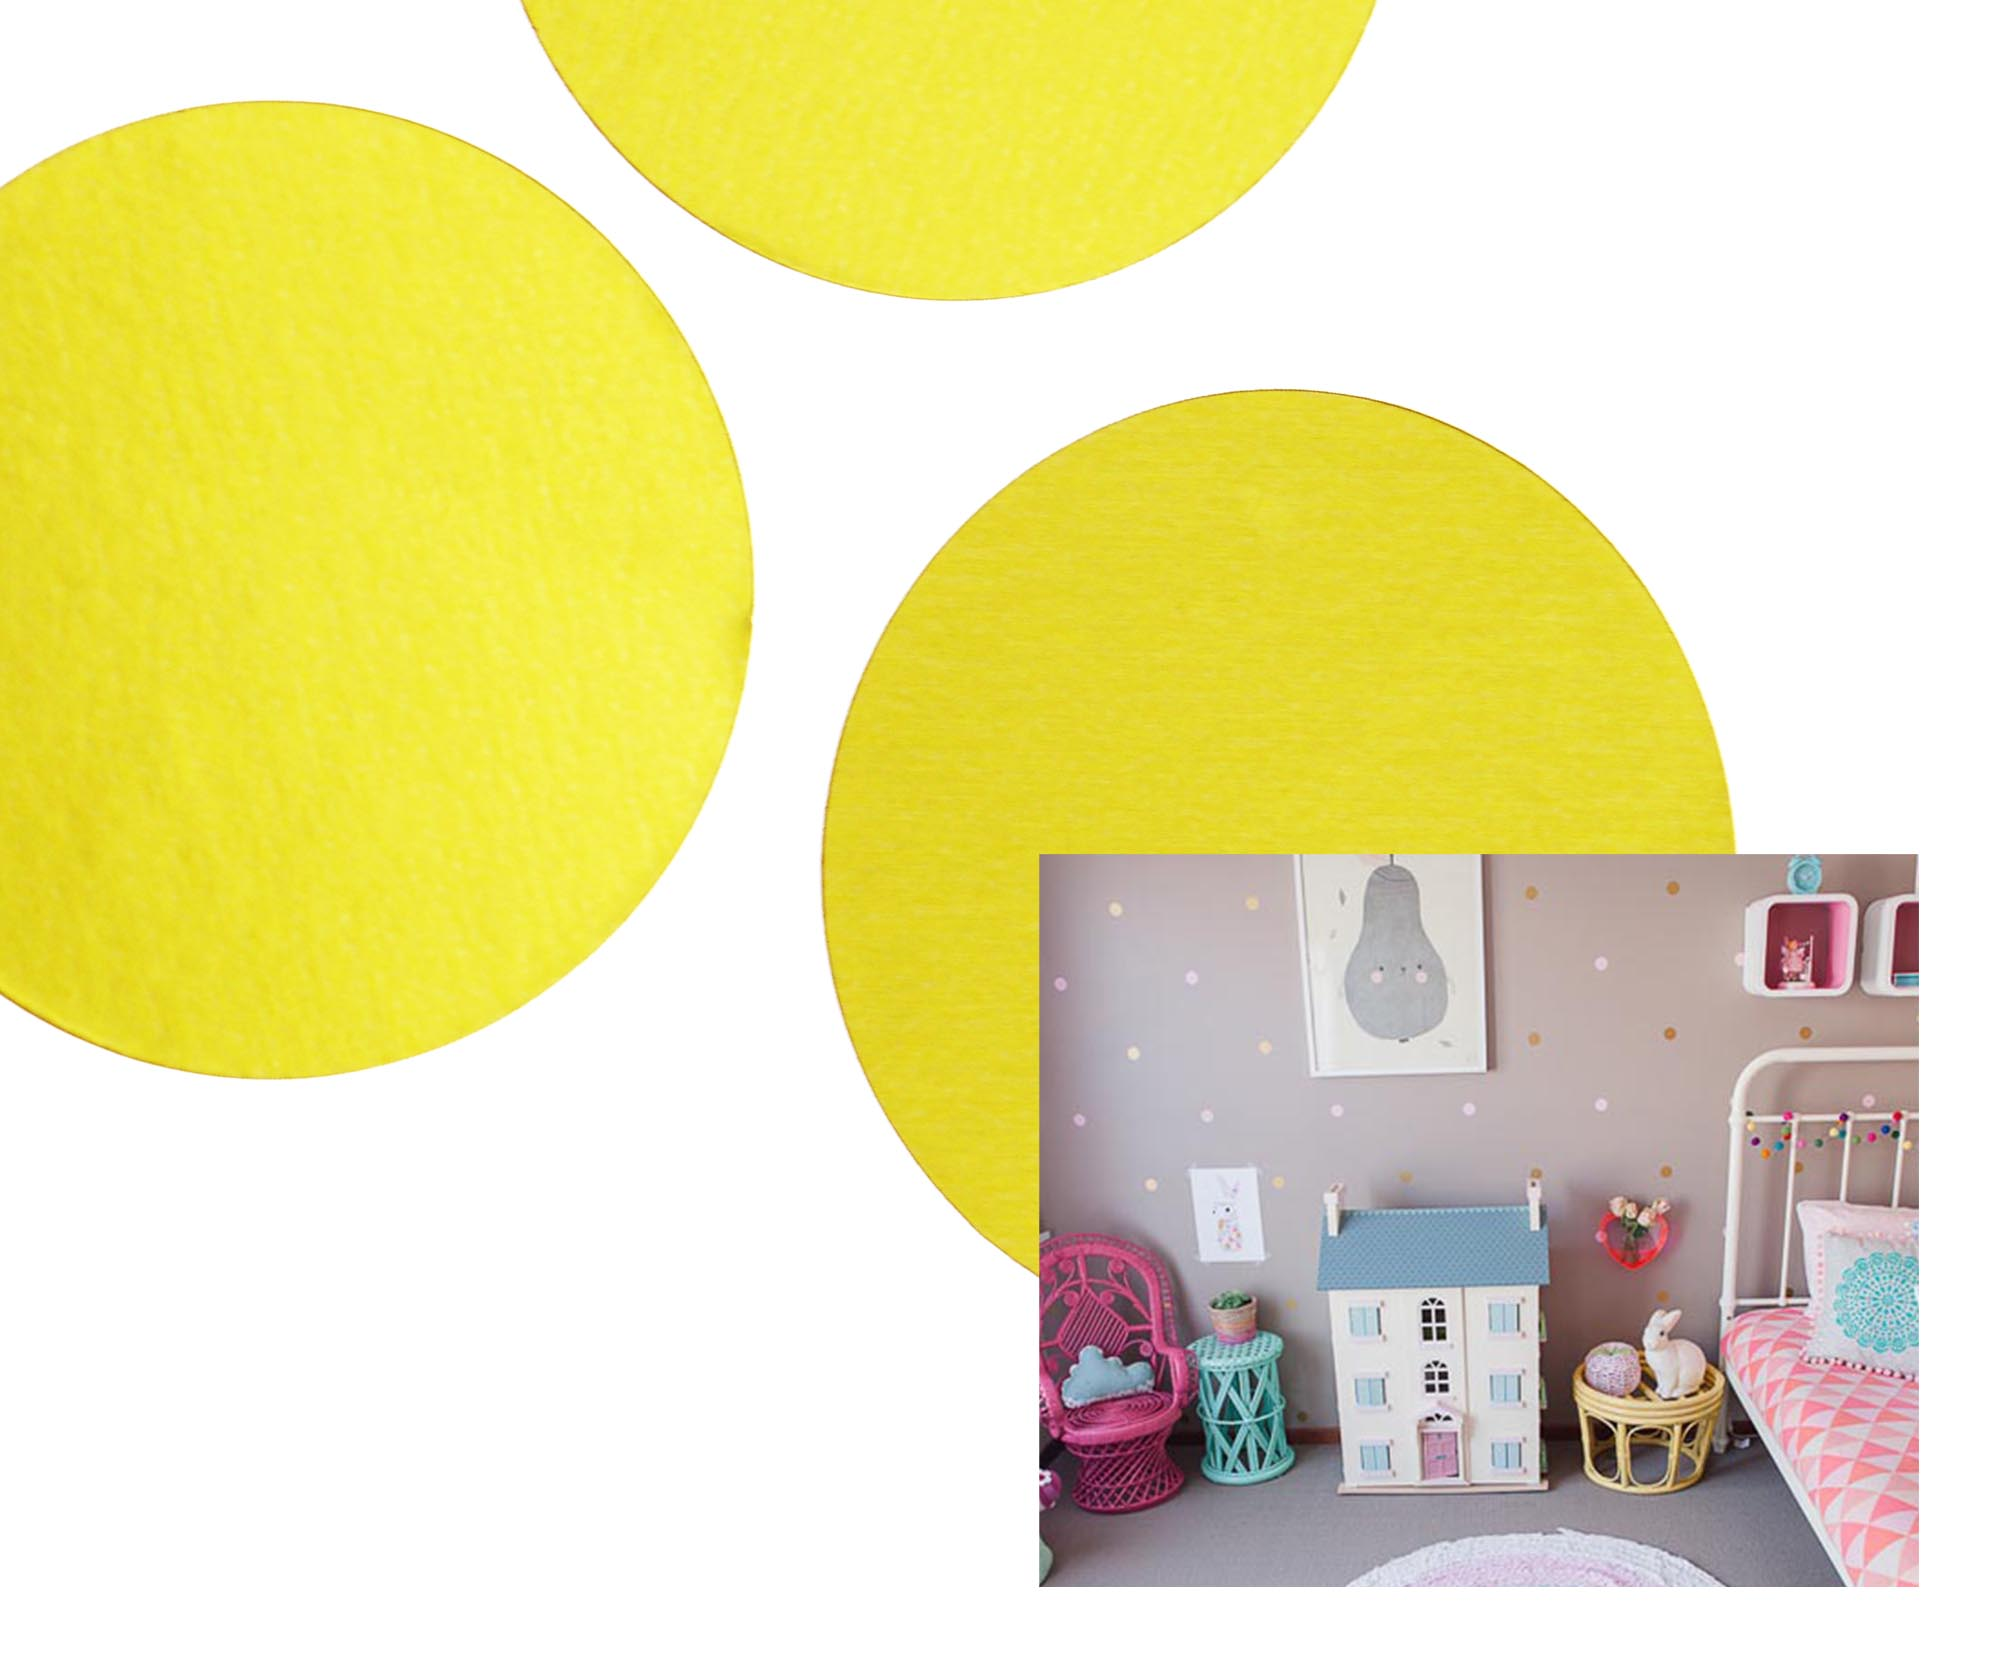 Details about 120 Polka Dot Wall Stickers Decal Child Kids Vinyl Spots Removable Art Decor